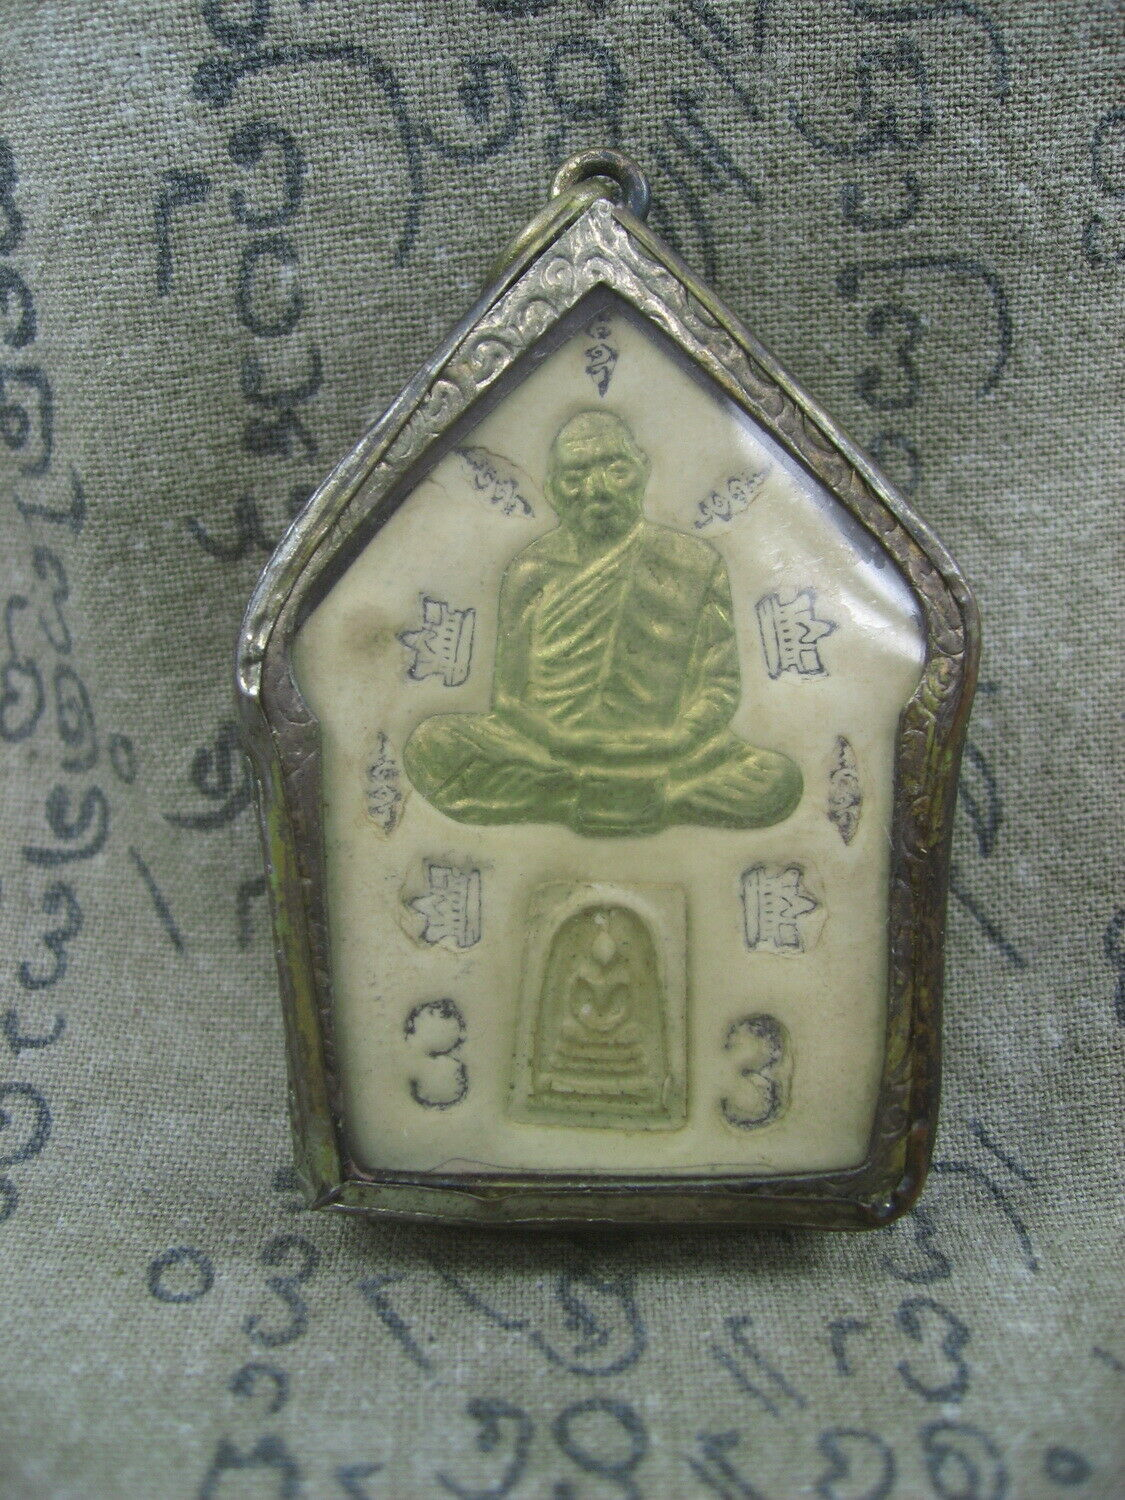 Primary image for BLESSED HOLY LP TIM WAT LAHANRAI TOP LUCKY POWER RARE THAI MAGIC BUDDHA AMULET